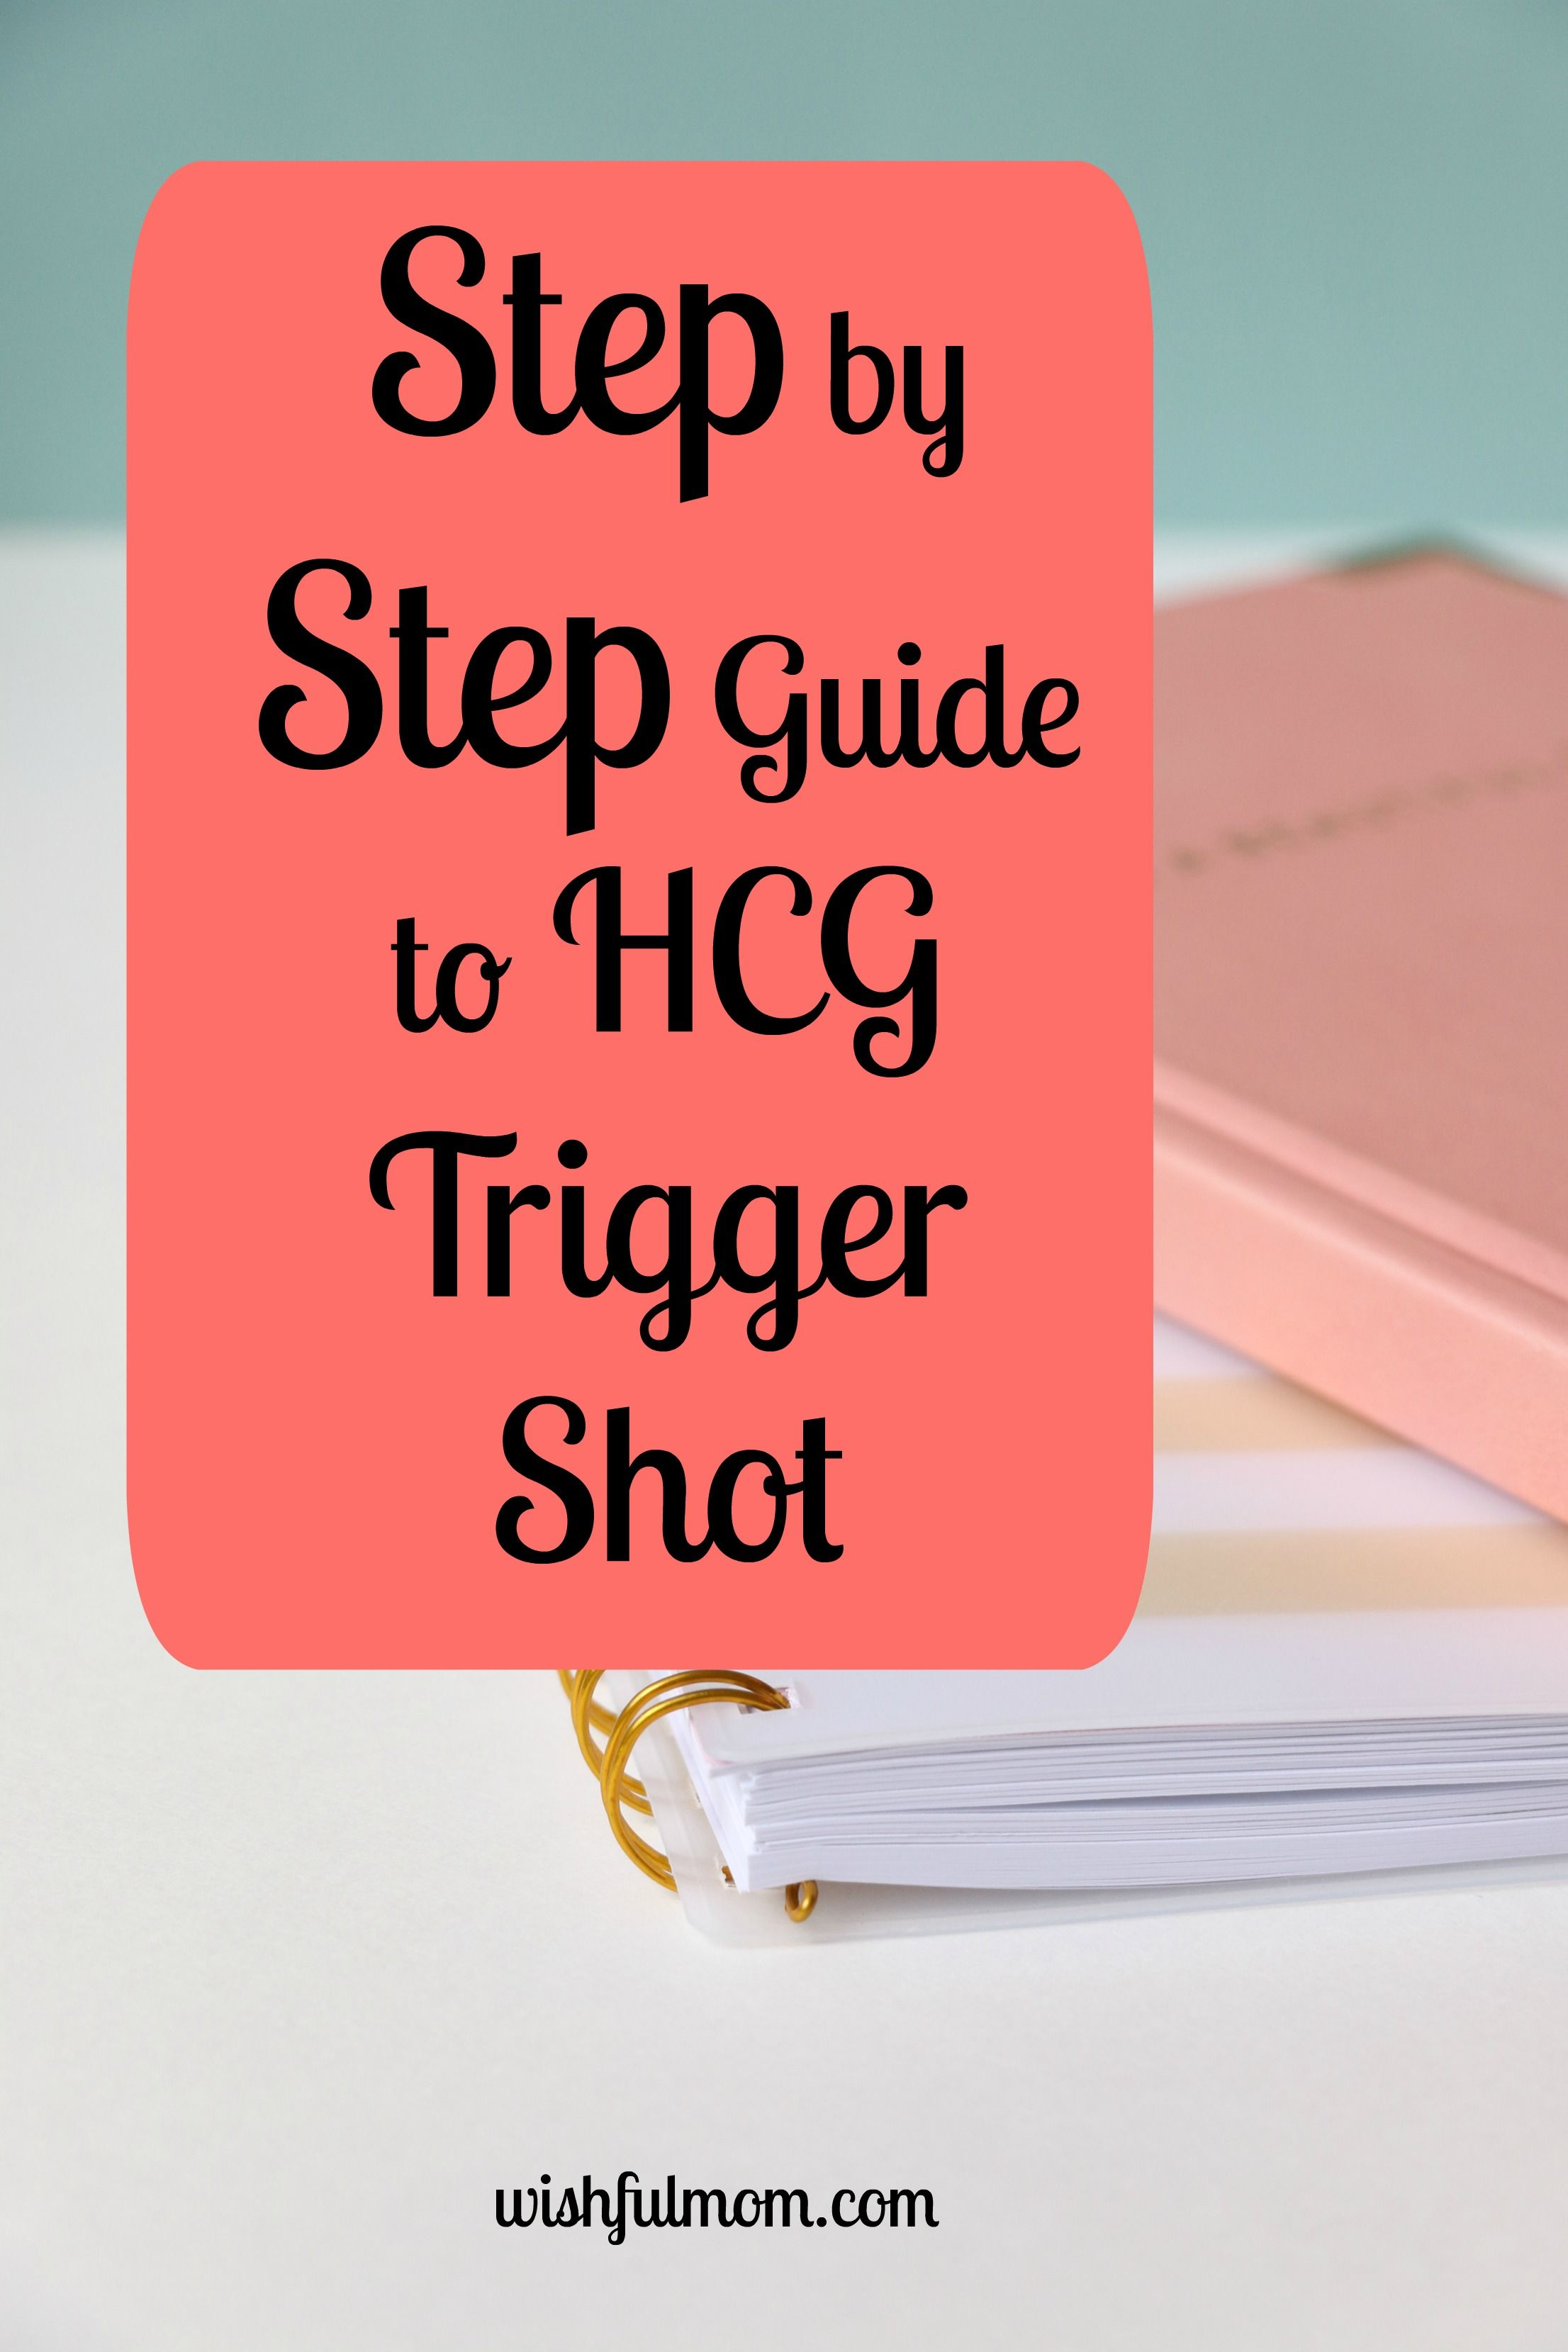 Learn These Iui Trigger Shot Instructions {Swypeout}